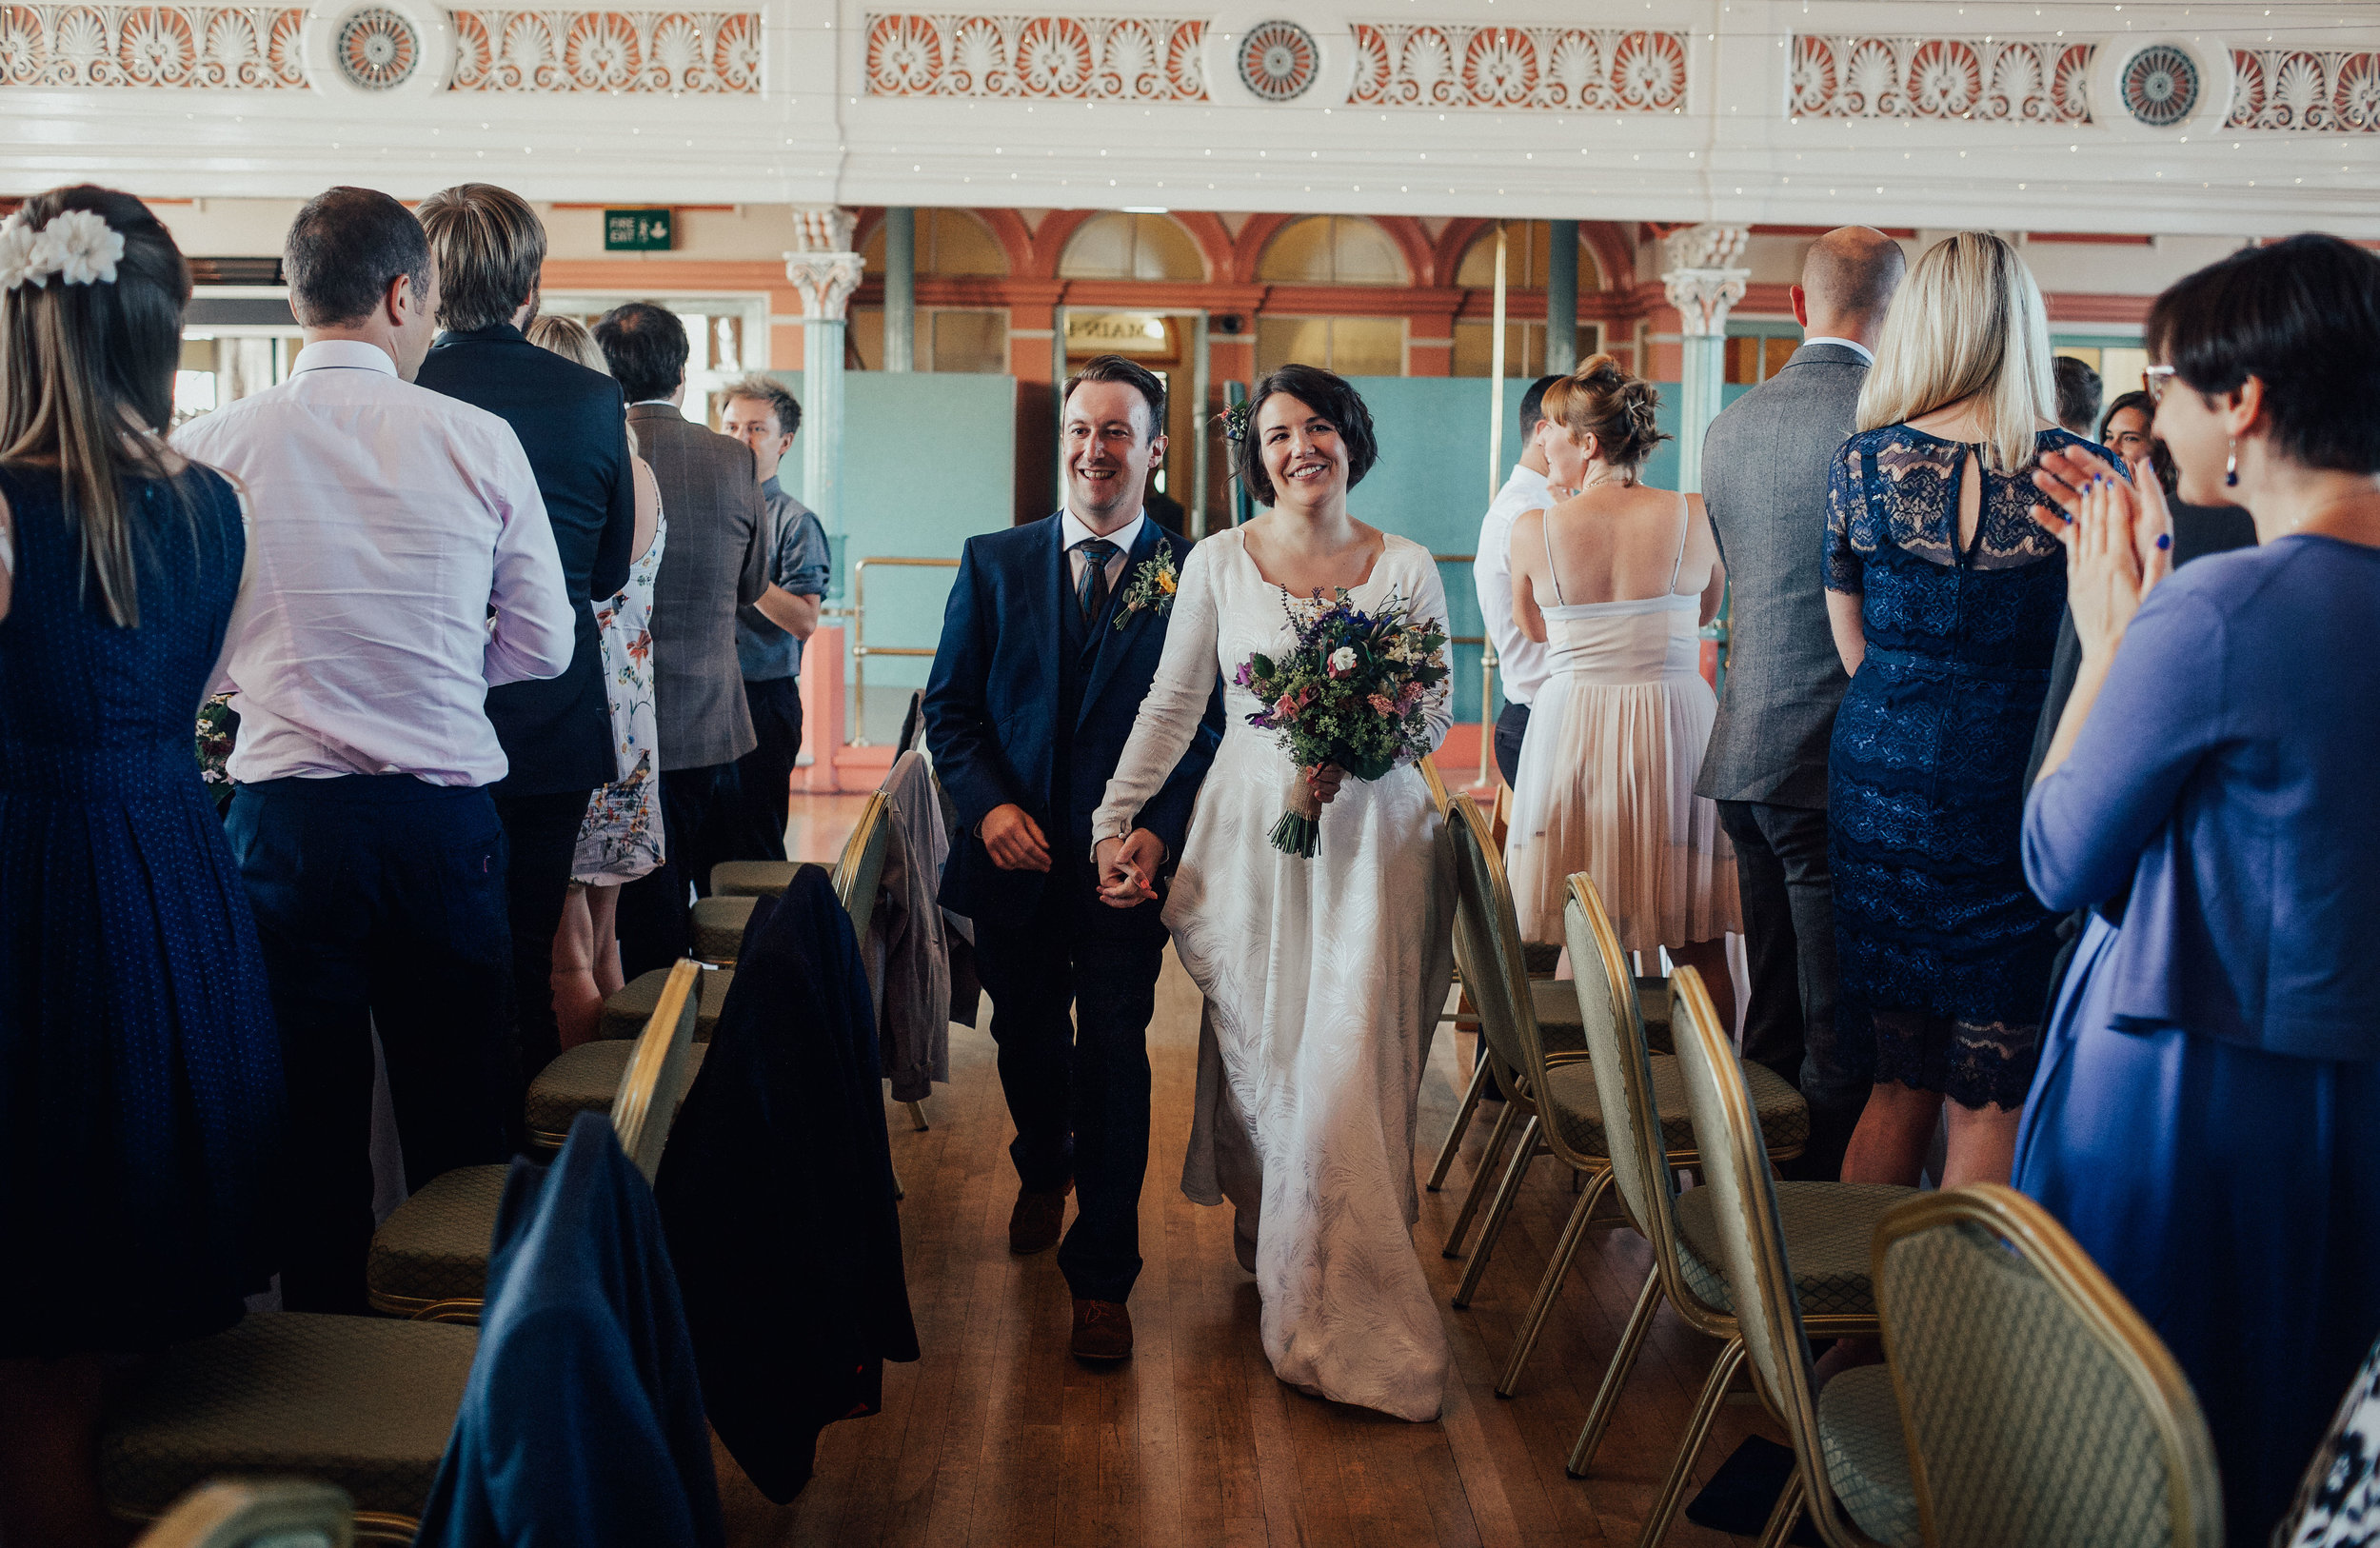 VICTORIA_HALL_SALTAIRE_VINTAGE_YORKSHIRE_WEDDING_PJ_PHILLIPS_PHOTOGRAPHY_83.jpg